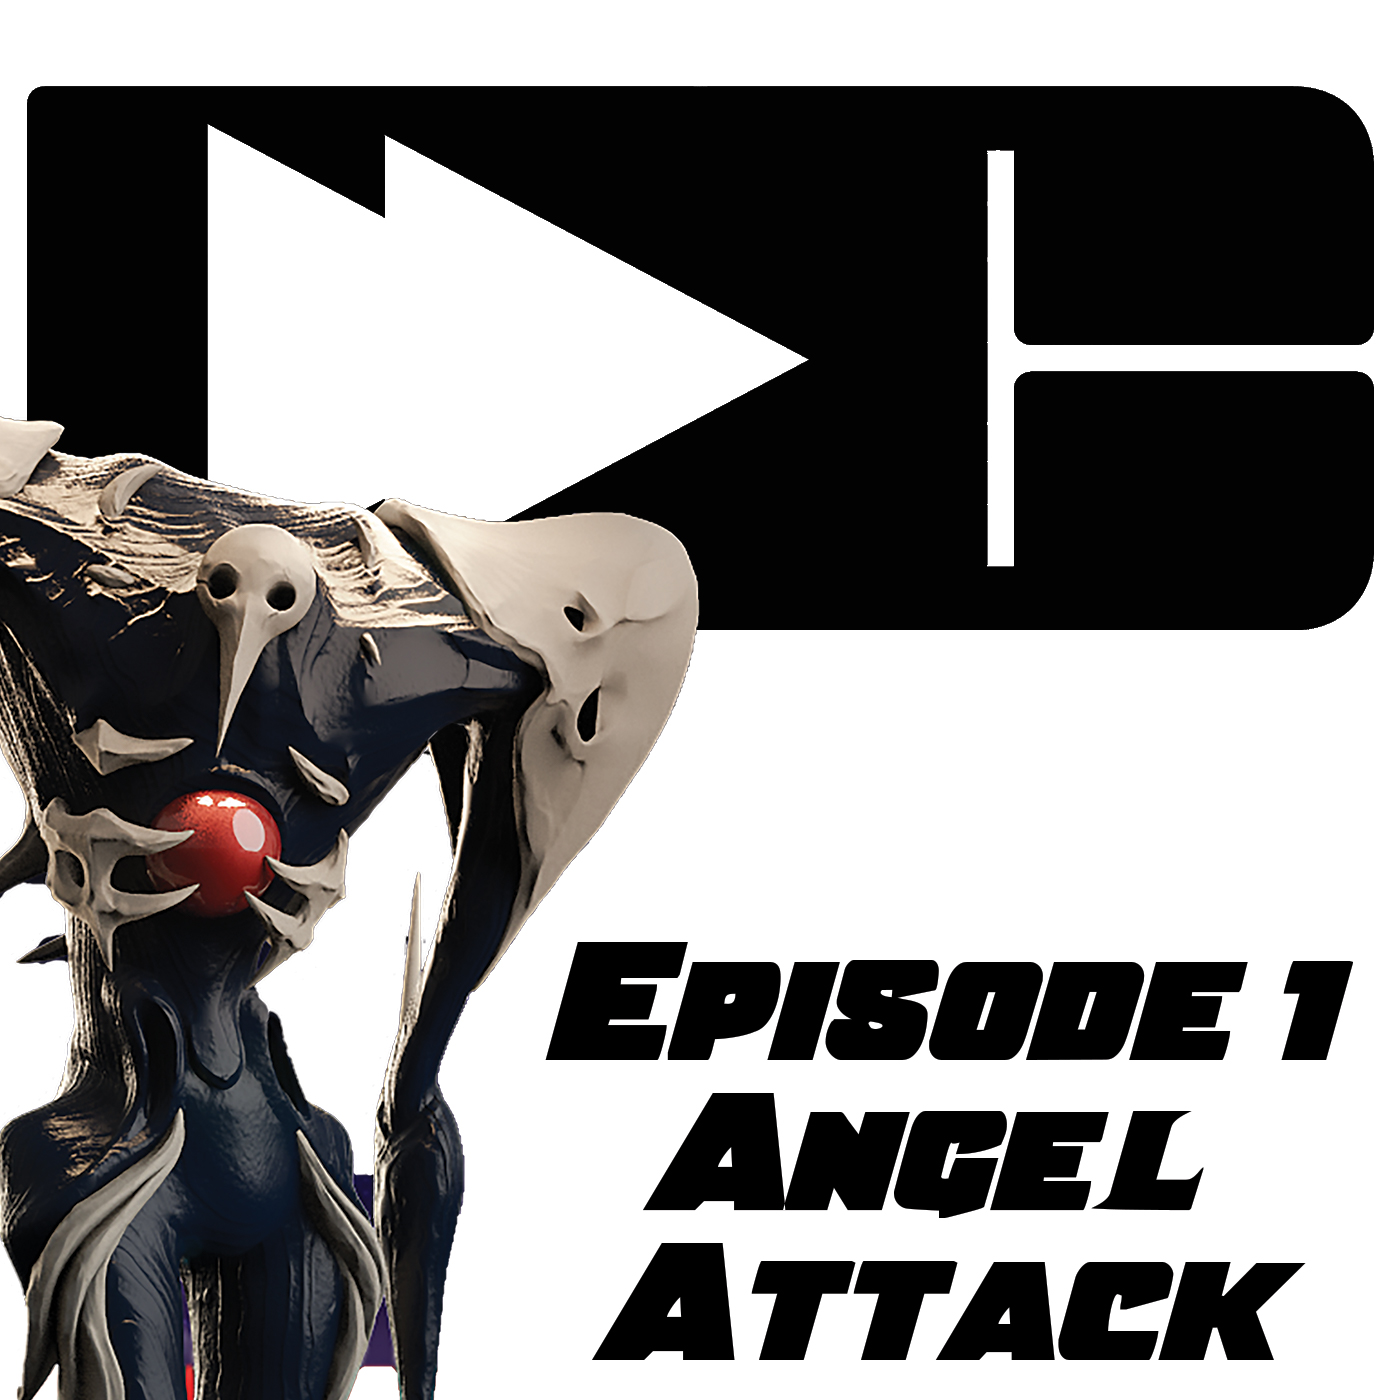 Episode 1 Angel Attack